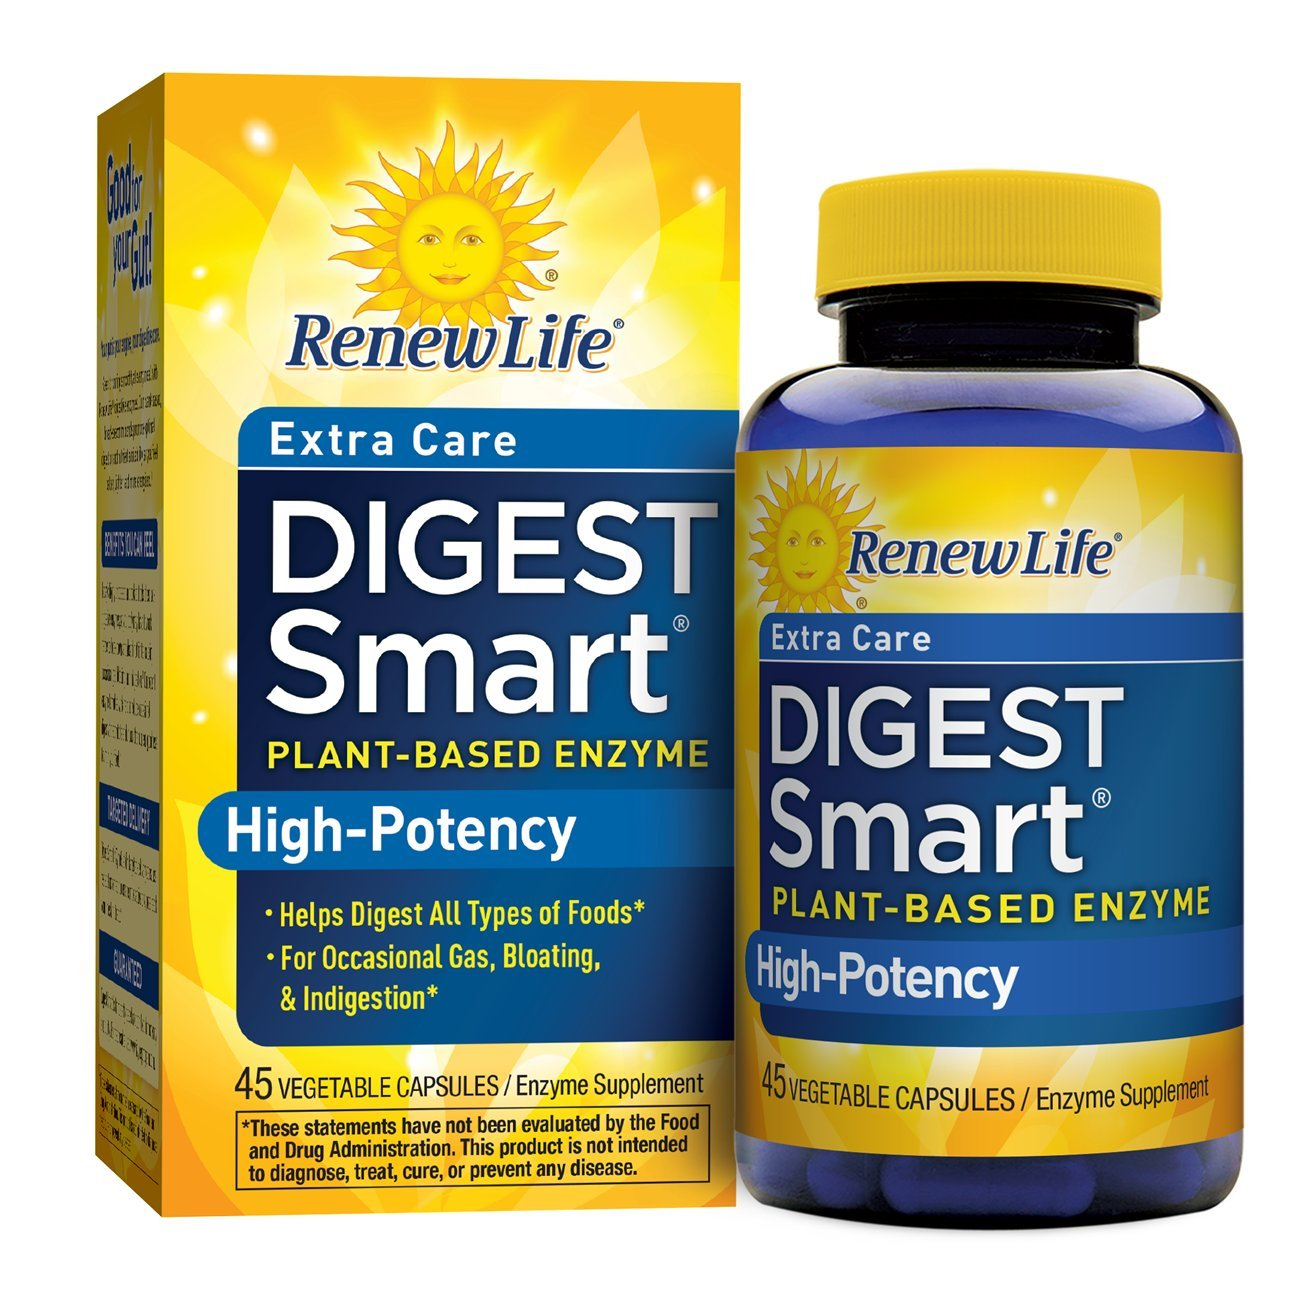 Renew Life - Digest Smart Extra Care - gas, bloating, and digestive relief, plant-based enzyme supplement - 45 vegetable capsules